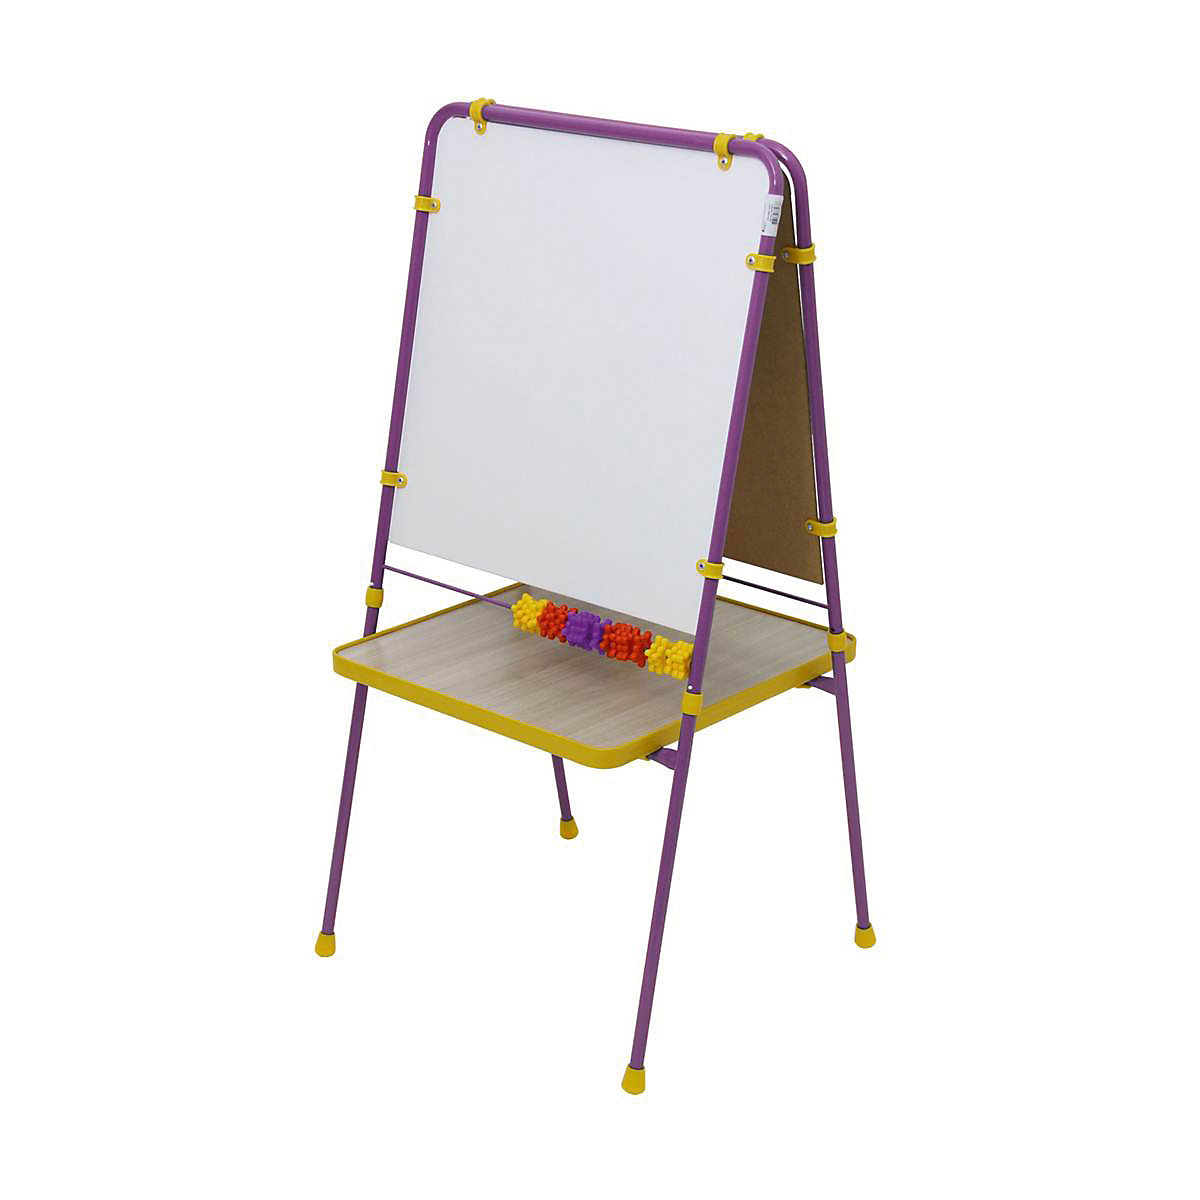 Drawing Toys FEYA 8645849 Easel Board Sets Creativity 3D pen Kids Coloring Pages howshow 4 4 inch kids writing tablet handwriting mini lcd drawing board